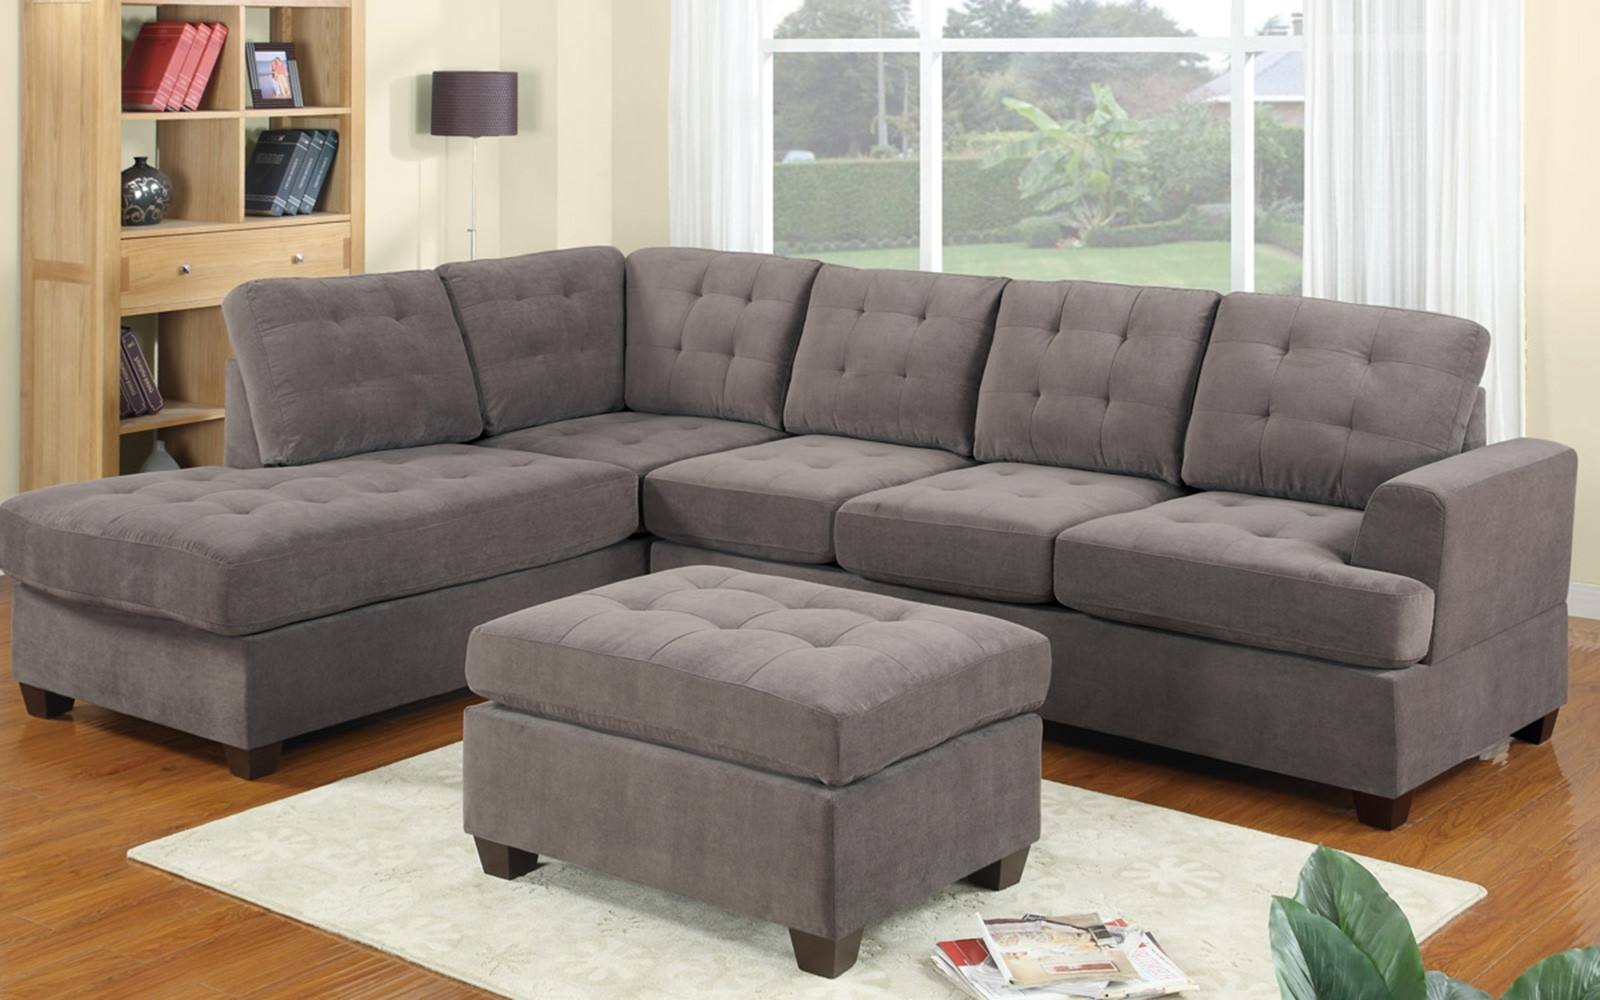 2 Piece Modern Reversible Grey Tufted Microfiber Sectional Sofa Throughout Best And Newest Tufted Sectional Sofas (View 1 of 20)